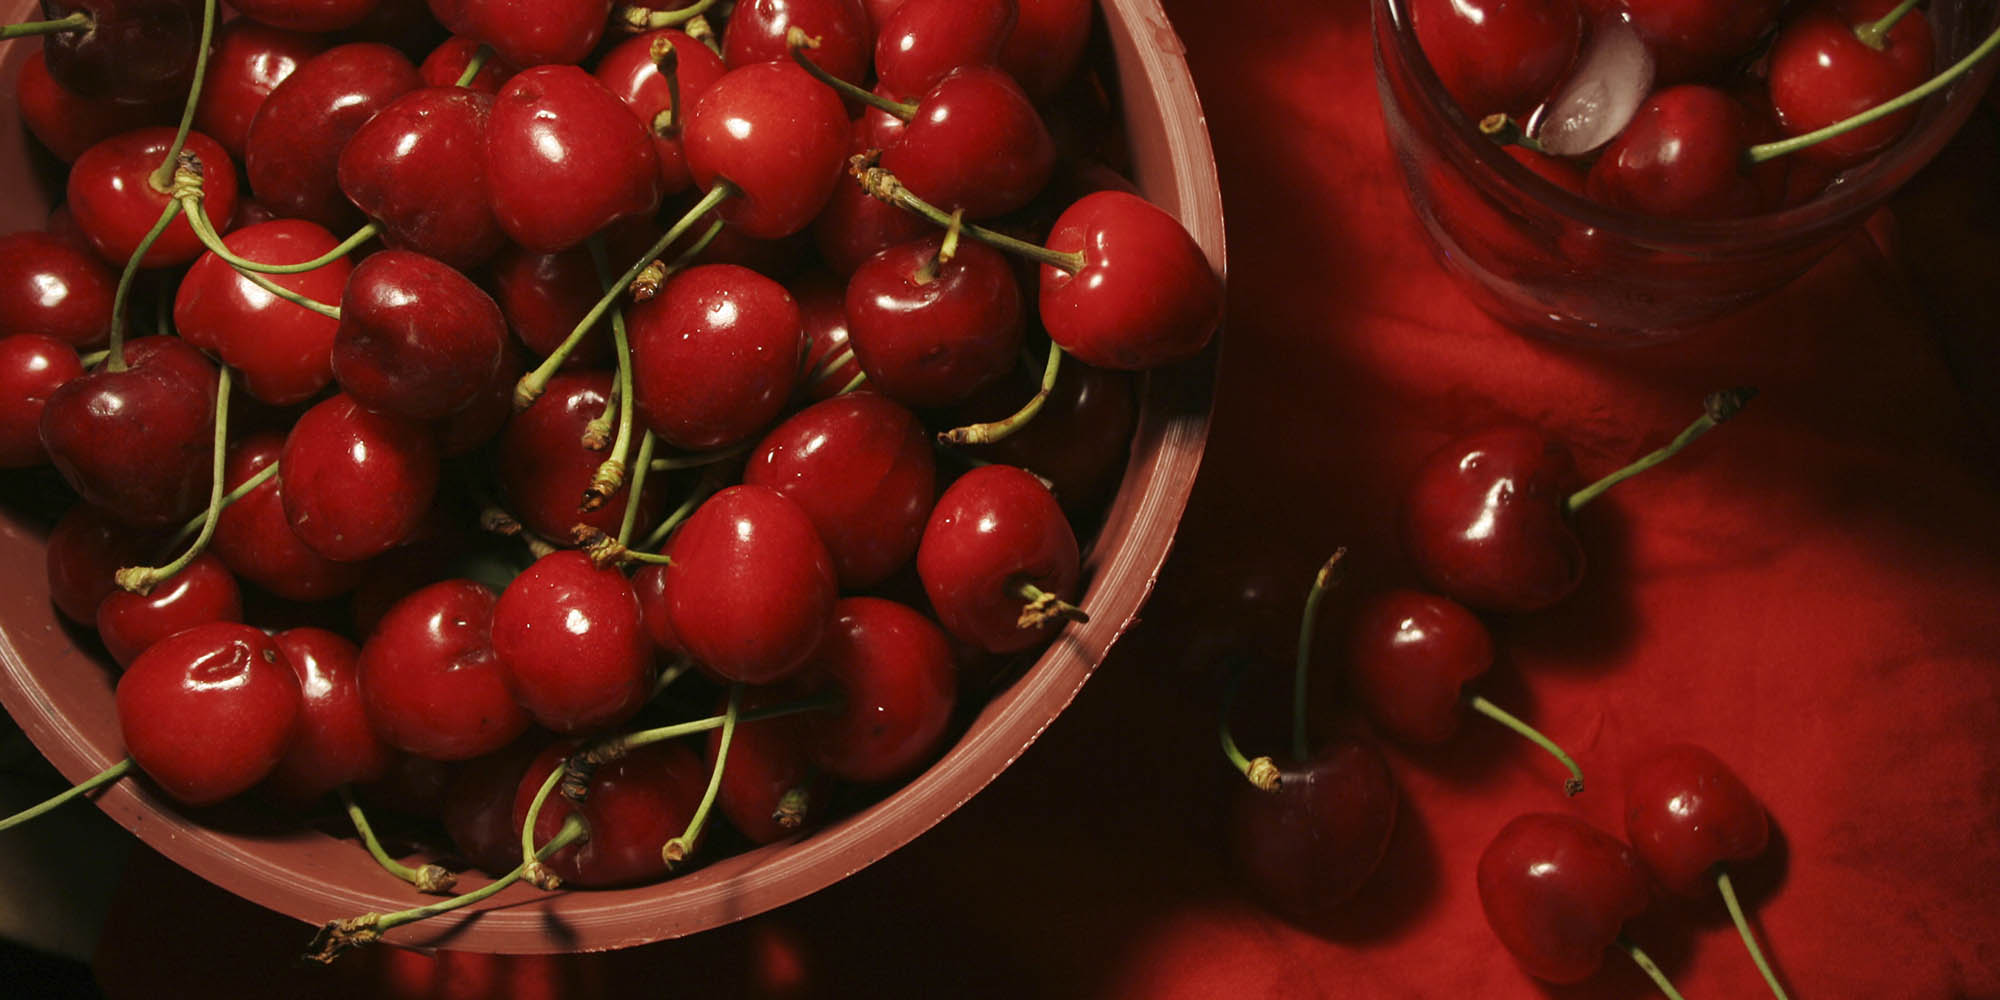 Could Tart Cherries Prevent Post-Run Respiratory Discomfort?